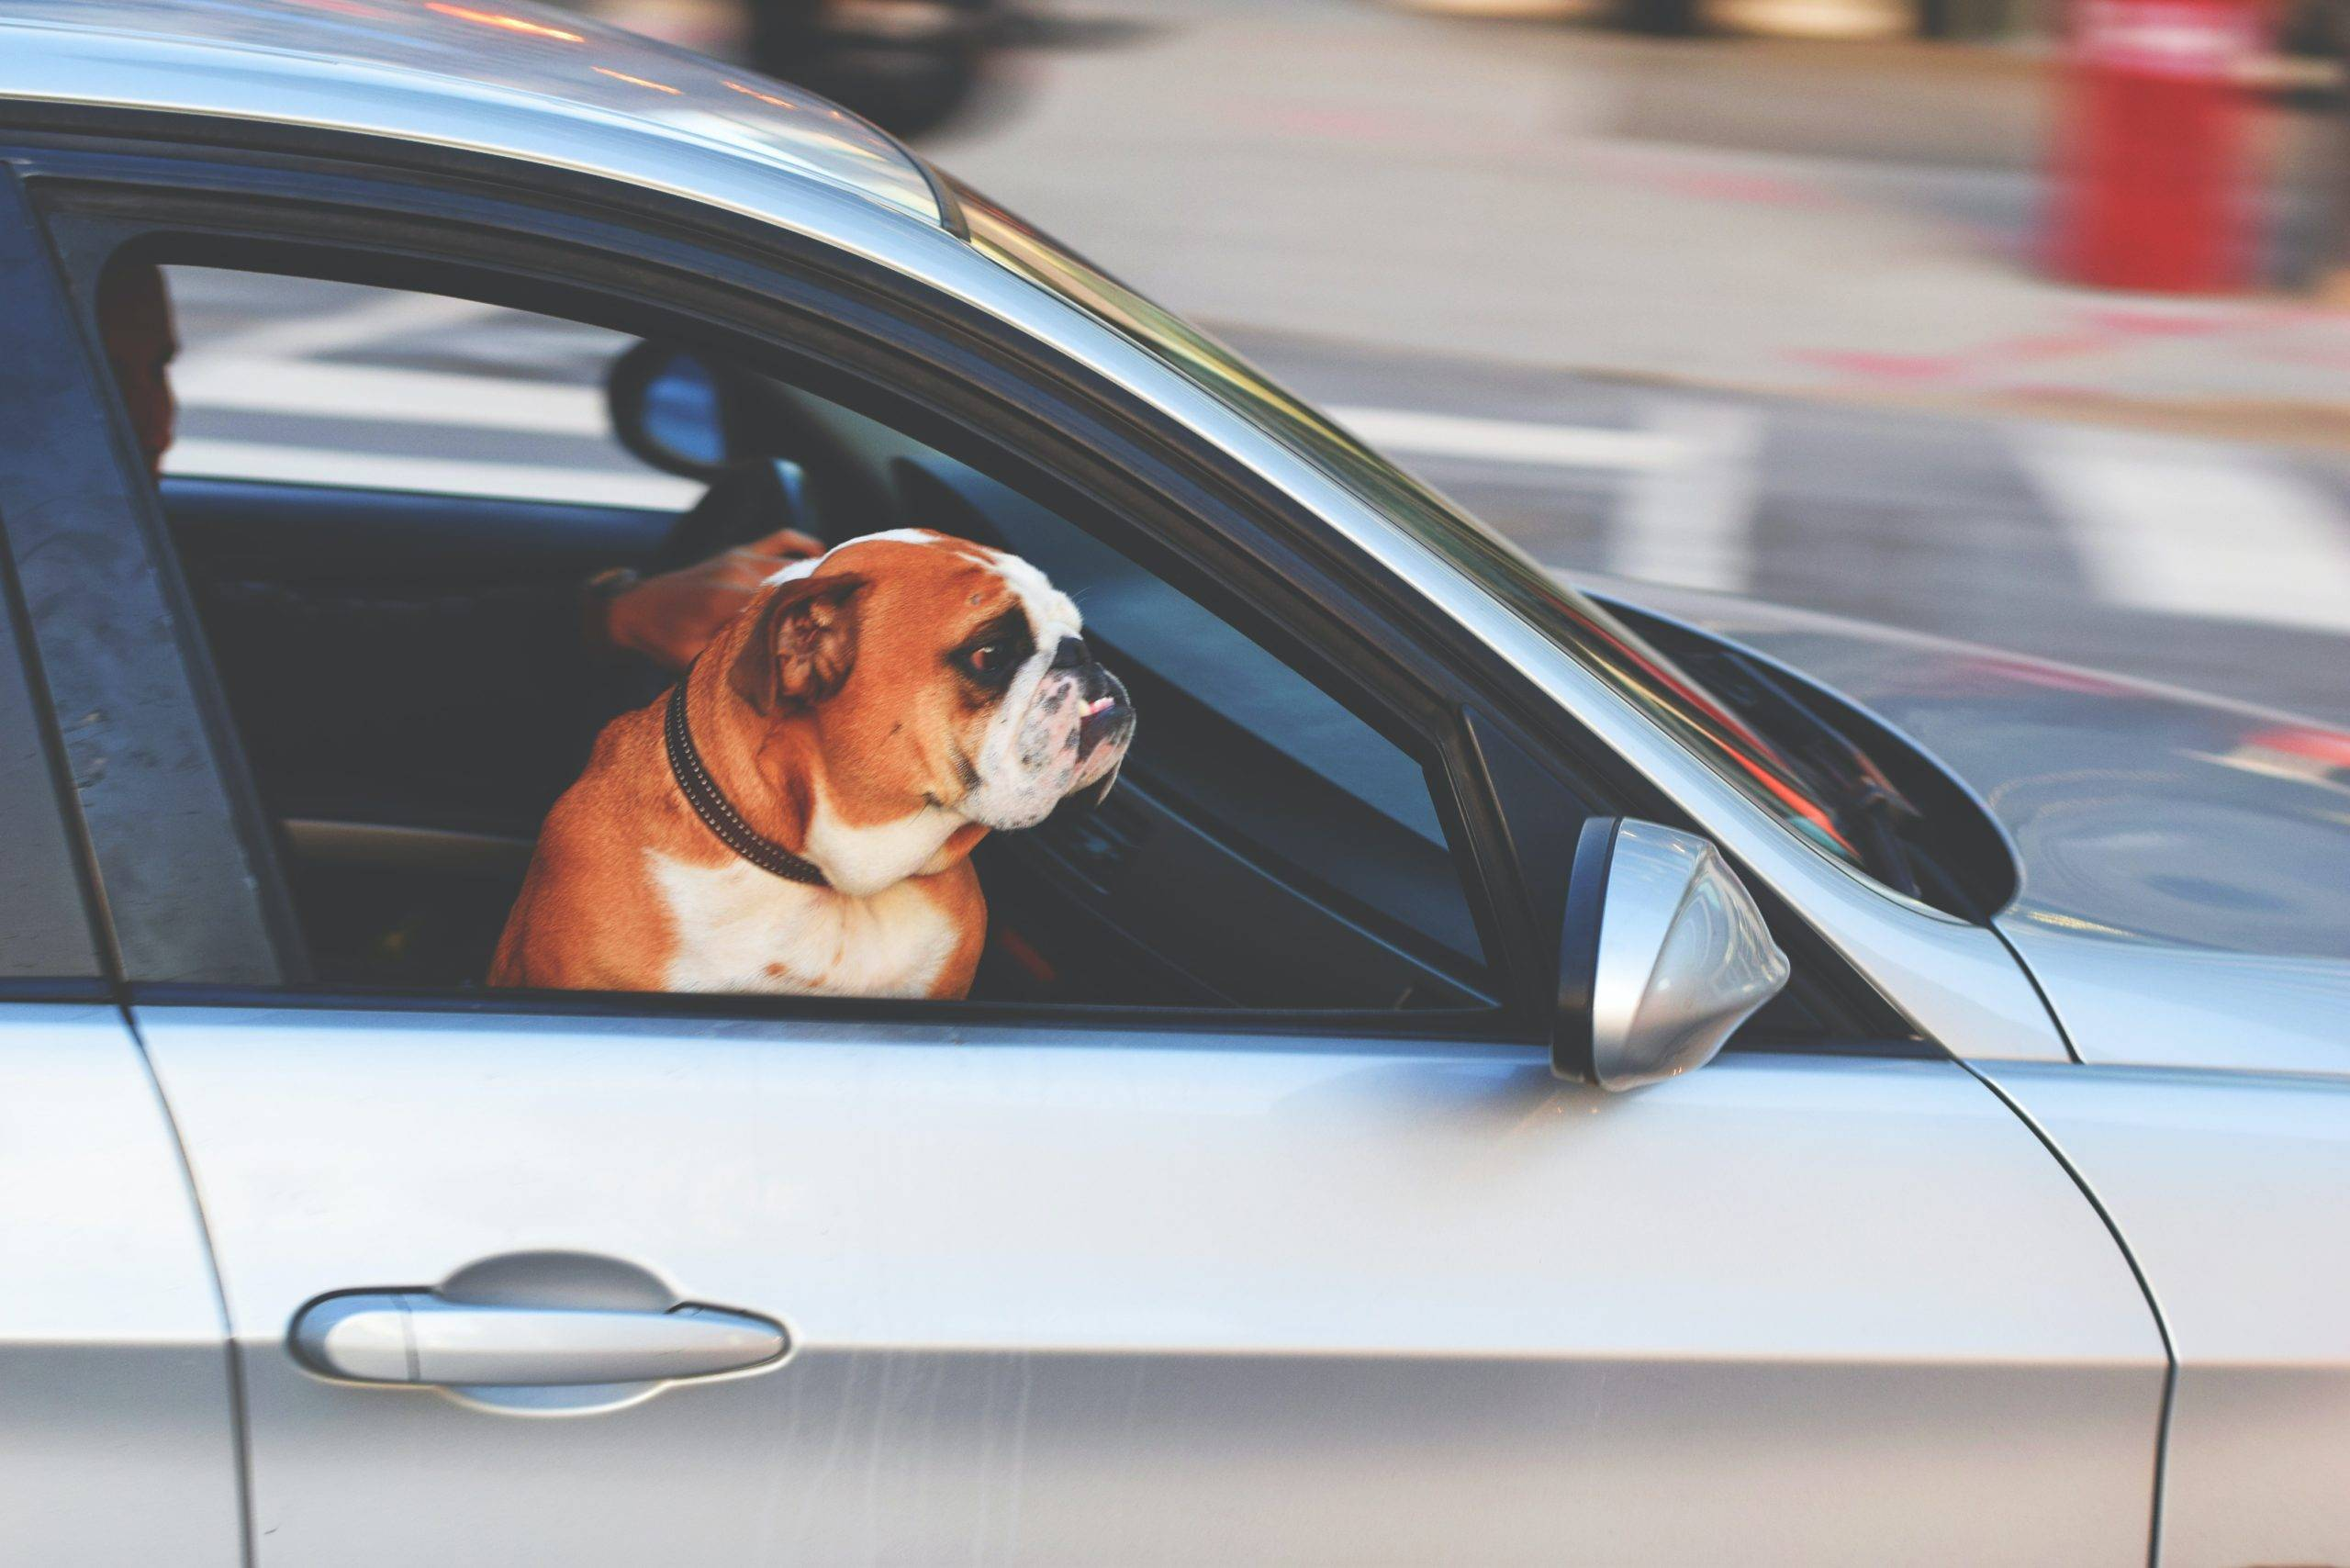 Dog staring out the window of a running car